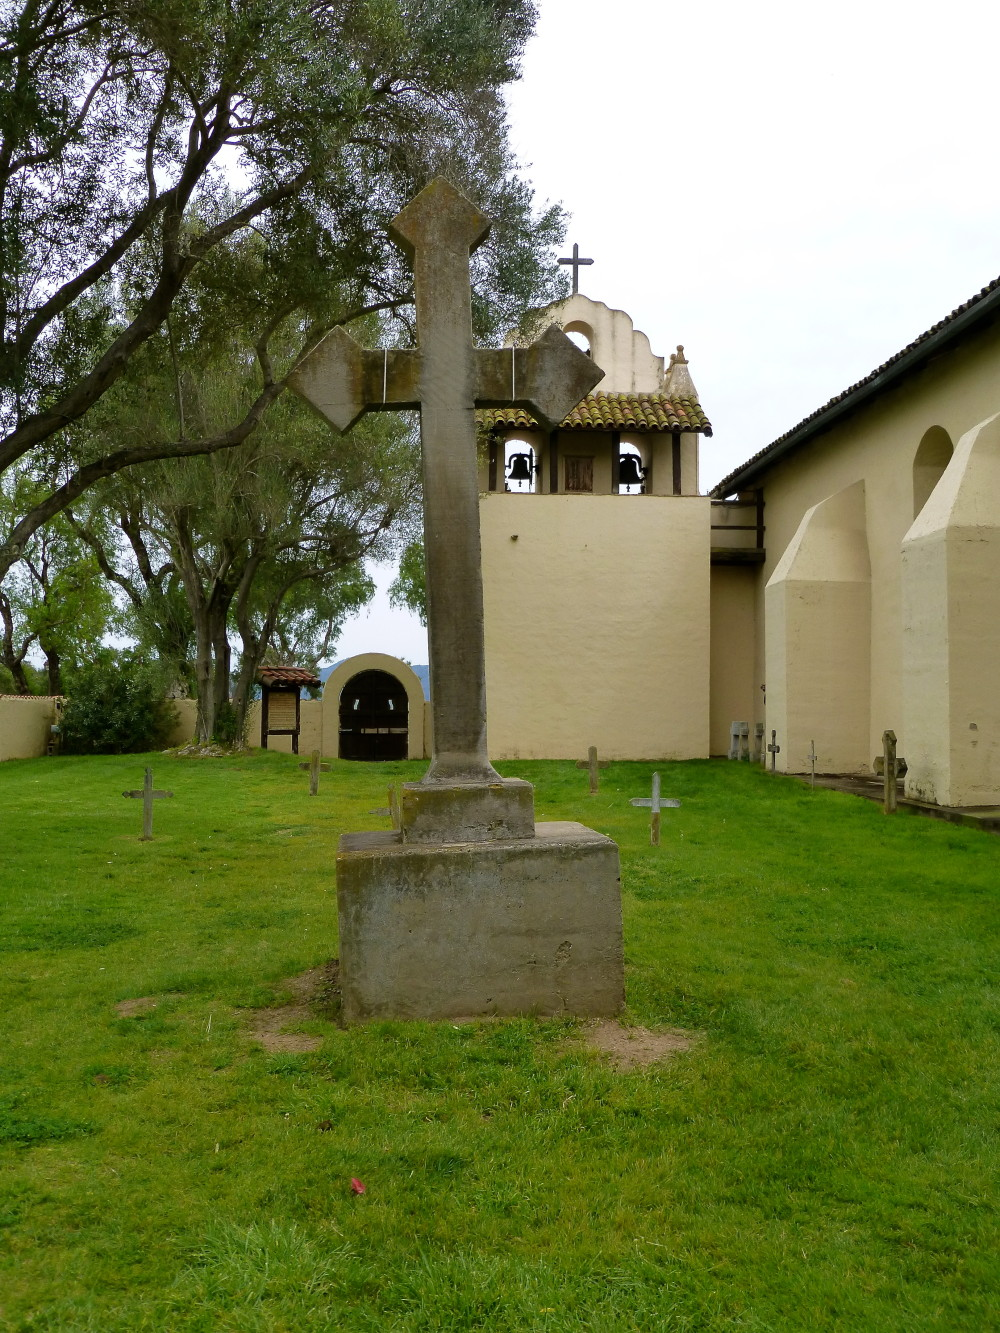 mission santa ines Santa ines, 19th mission named for a 13 year-old roman martyr, st agnes, who refused to sacrafice to the pagan gods in 304 ad, santa ines was dedicated in 1804 by father estevan tapis amazingly, it survived the numerous earthquakes.